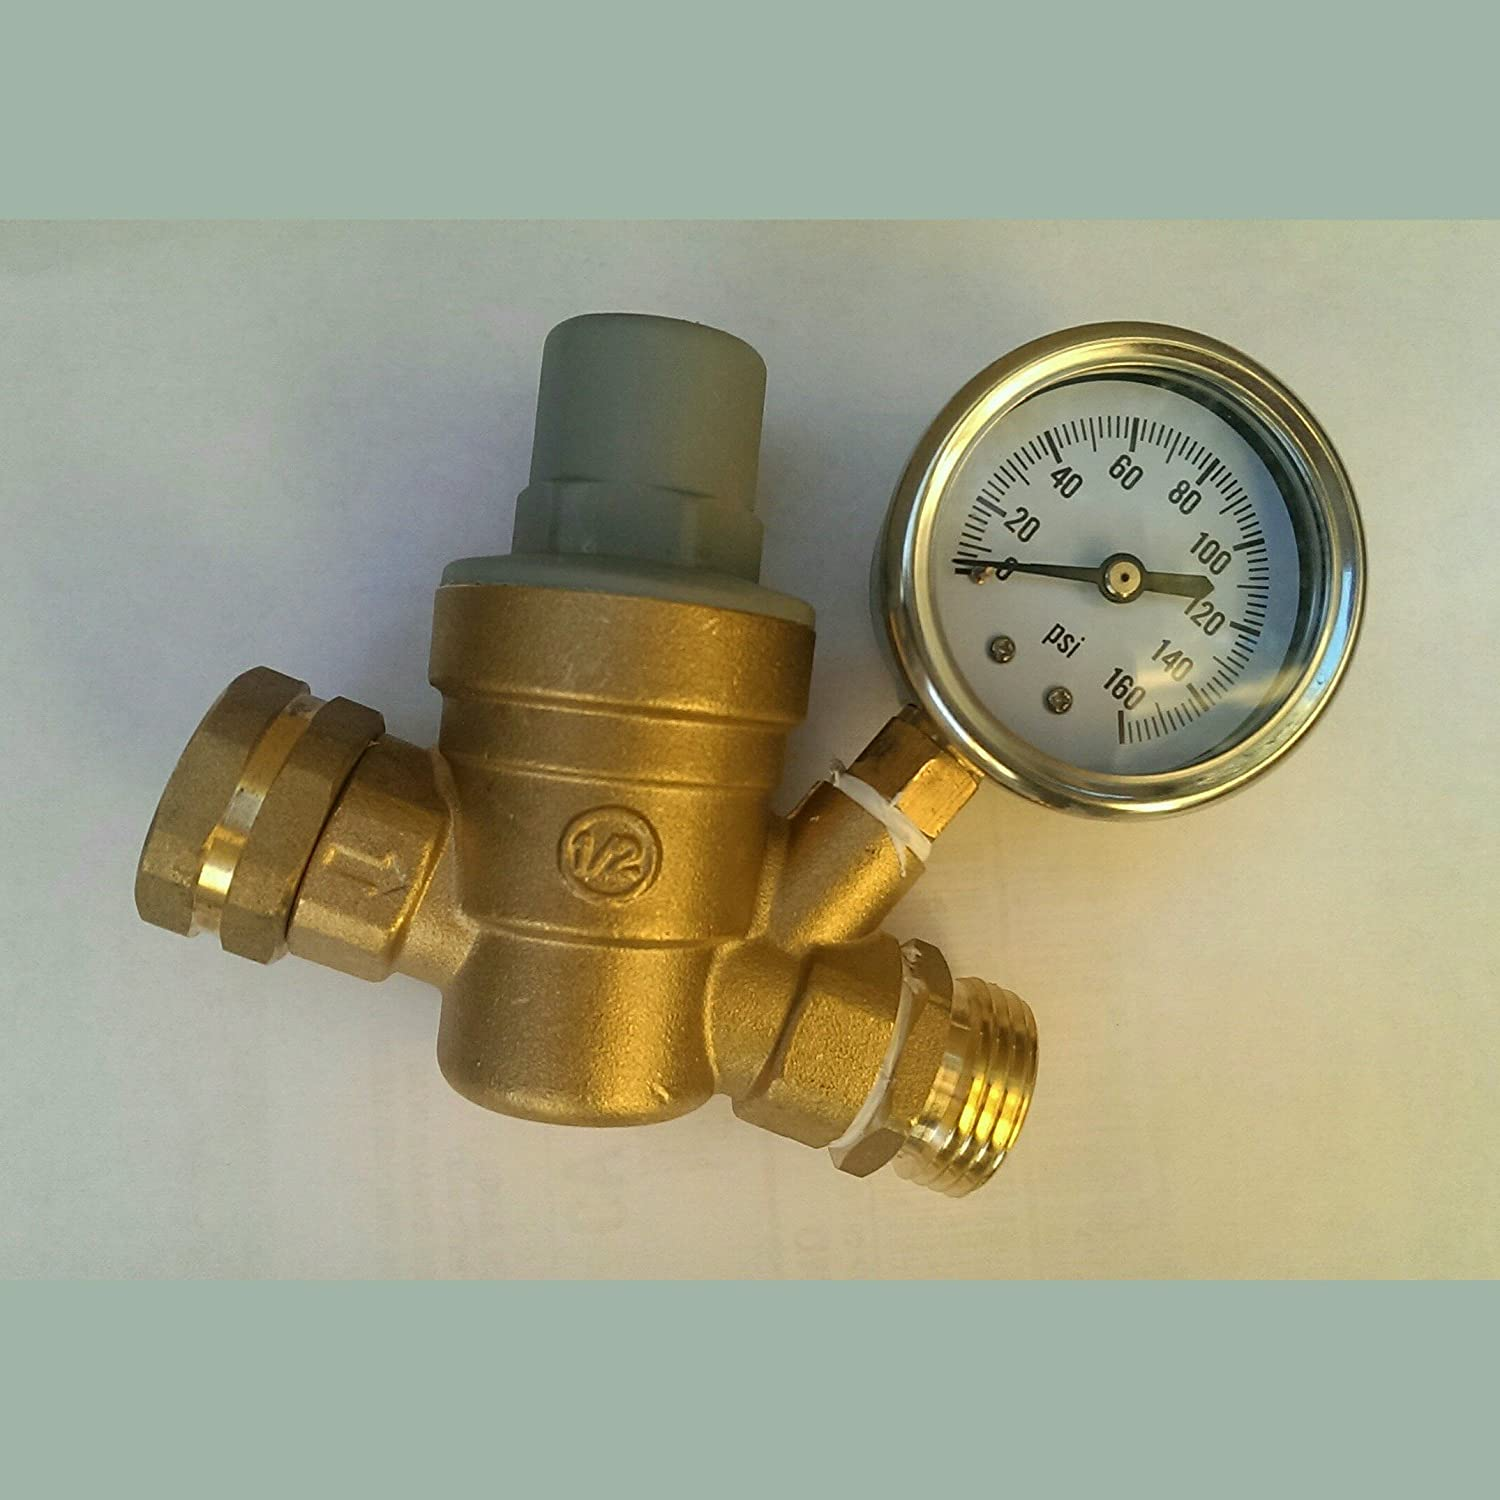 water pressure regulator rv brass lead free adjustable valve gauge irrigation. Black Bedroom Furniture Sets. Home Design Ideas